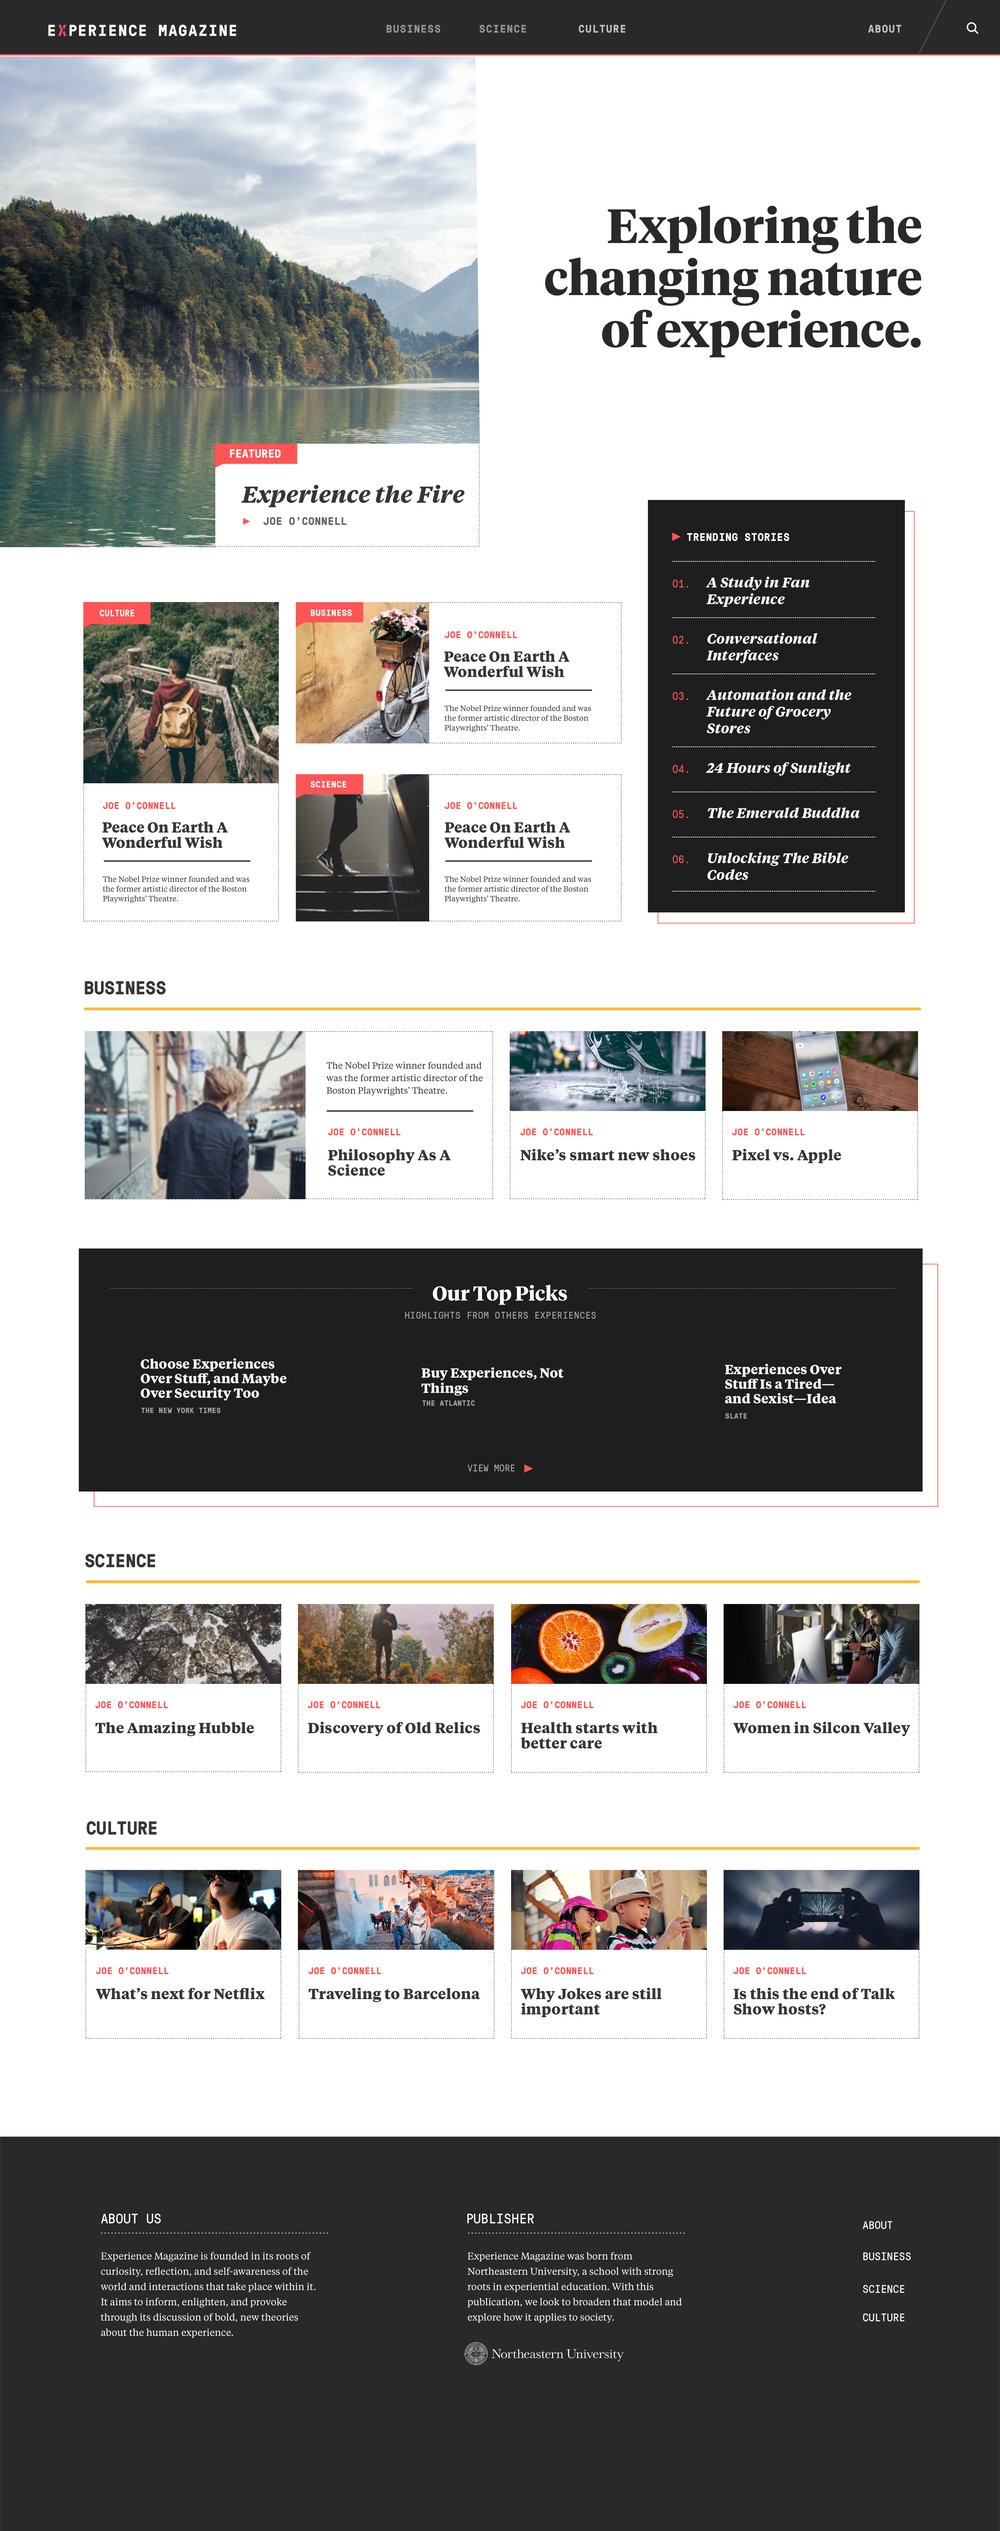 homepage-current copy 2.jpg